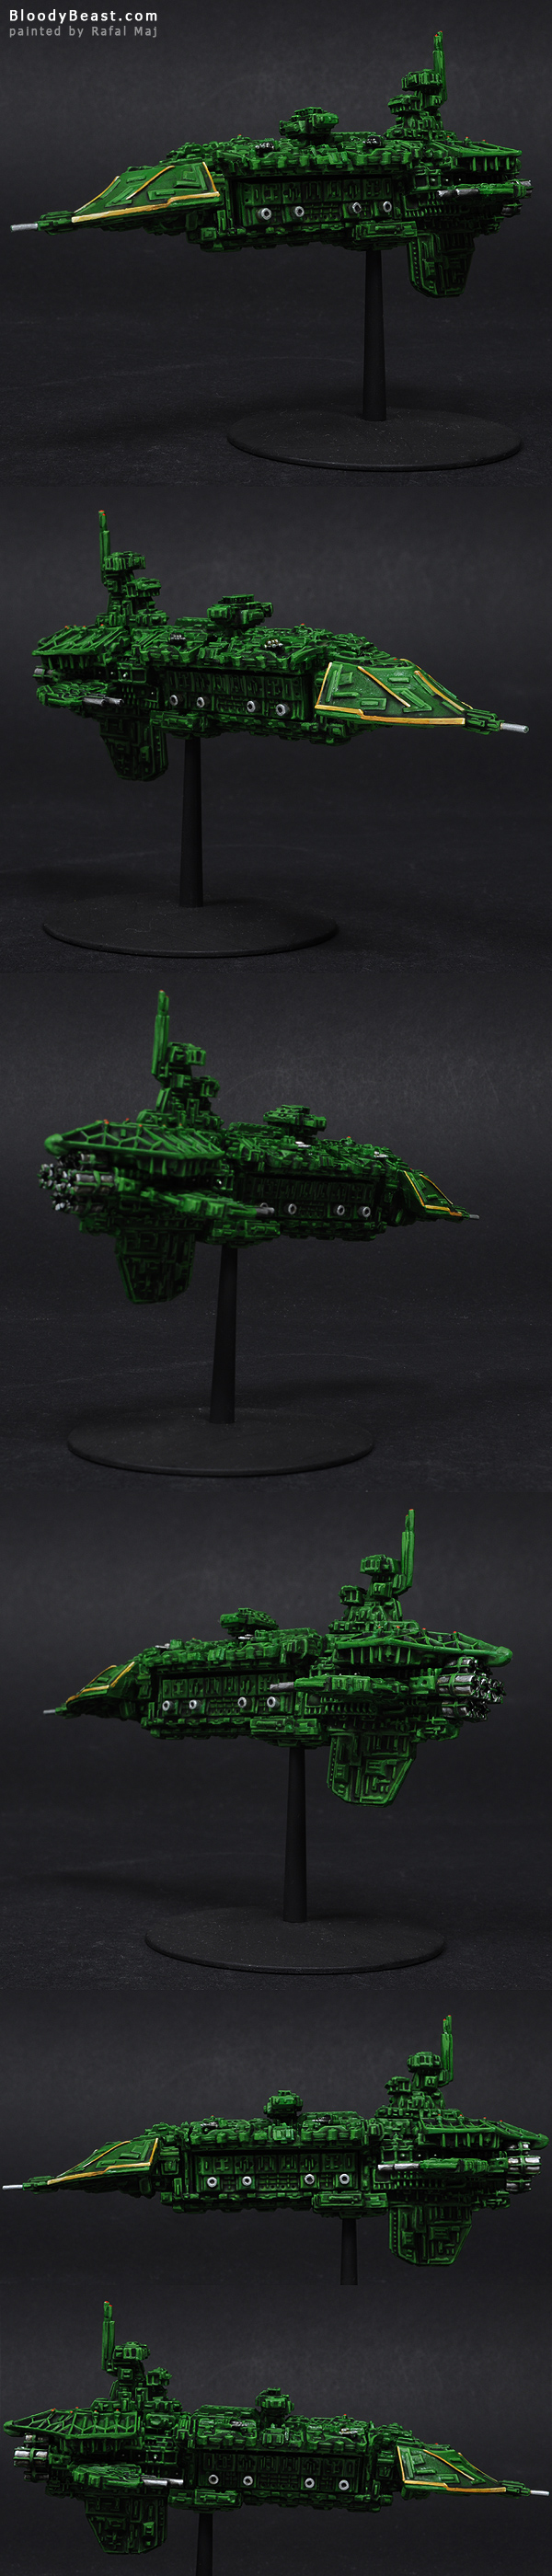 Battlefleet Gothic Imperial Vengeance Class Grand Cruiser painted by Rafal Maj (BloodyBeast.com)